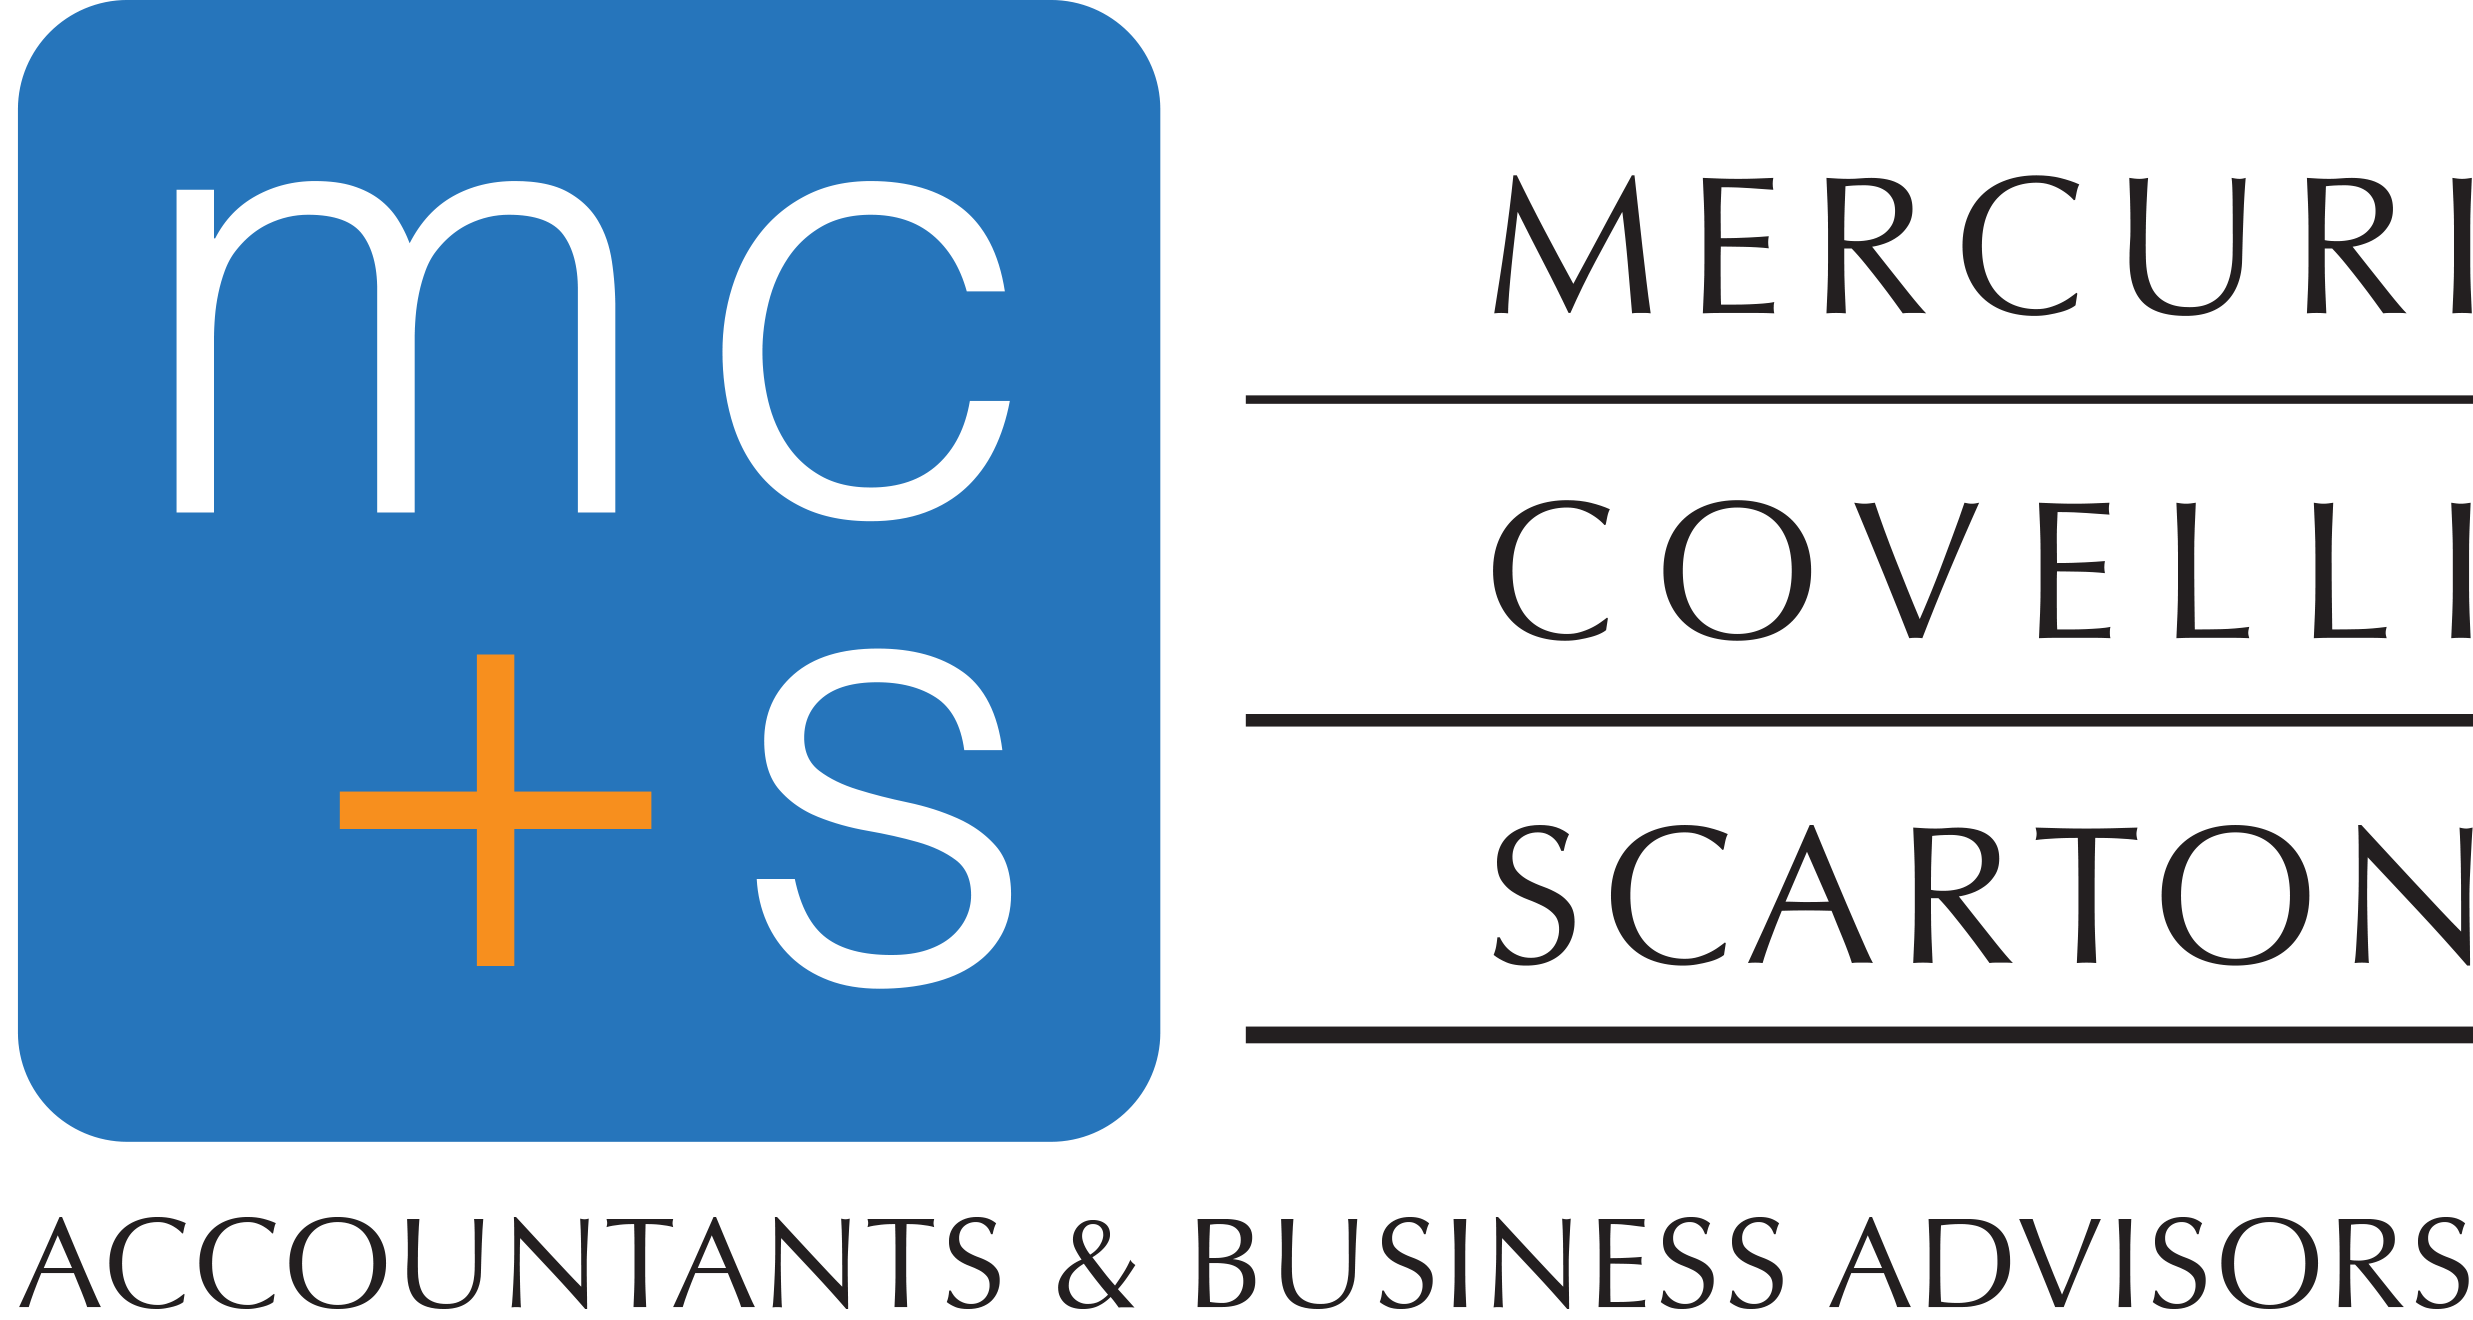 MC&S Pty Ltd